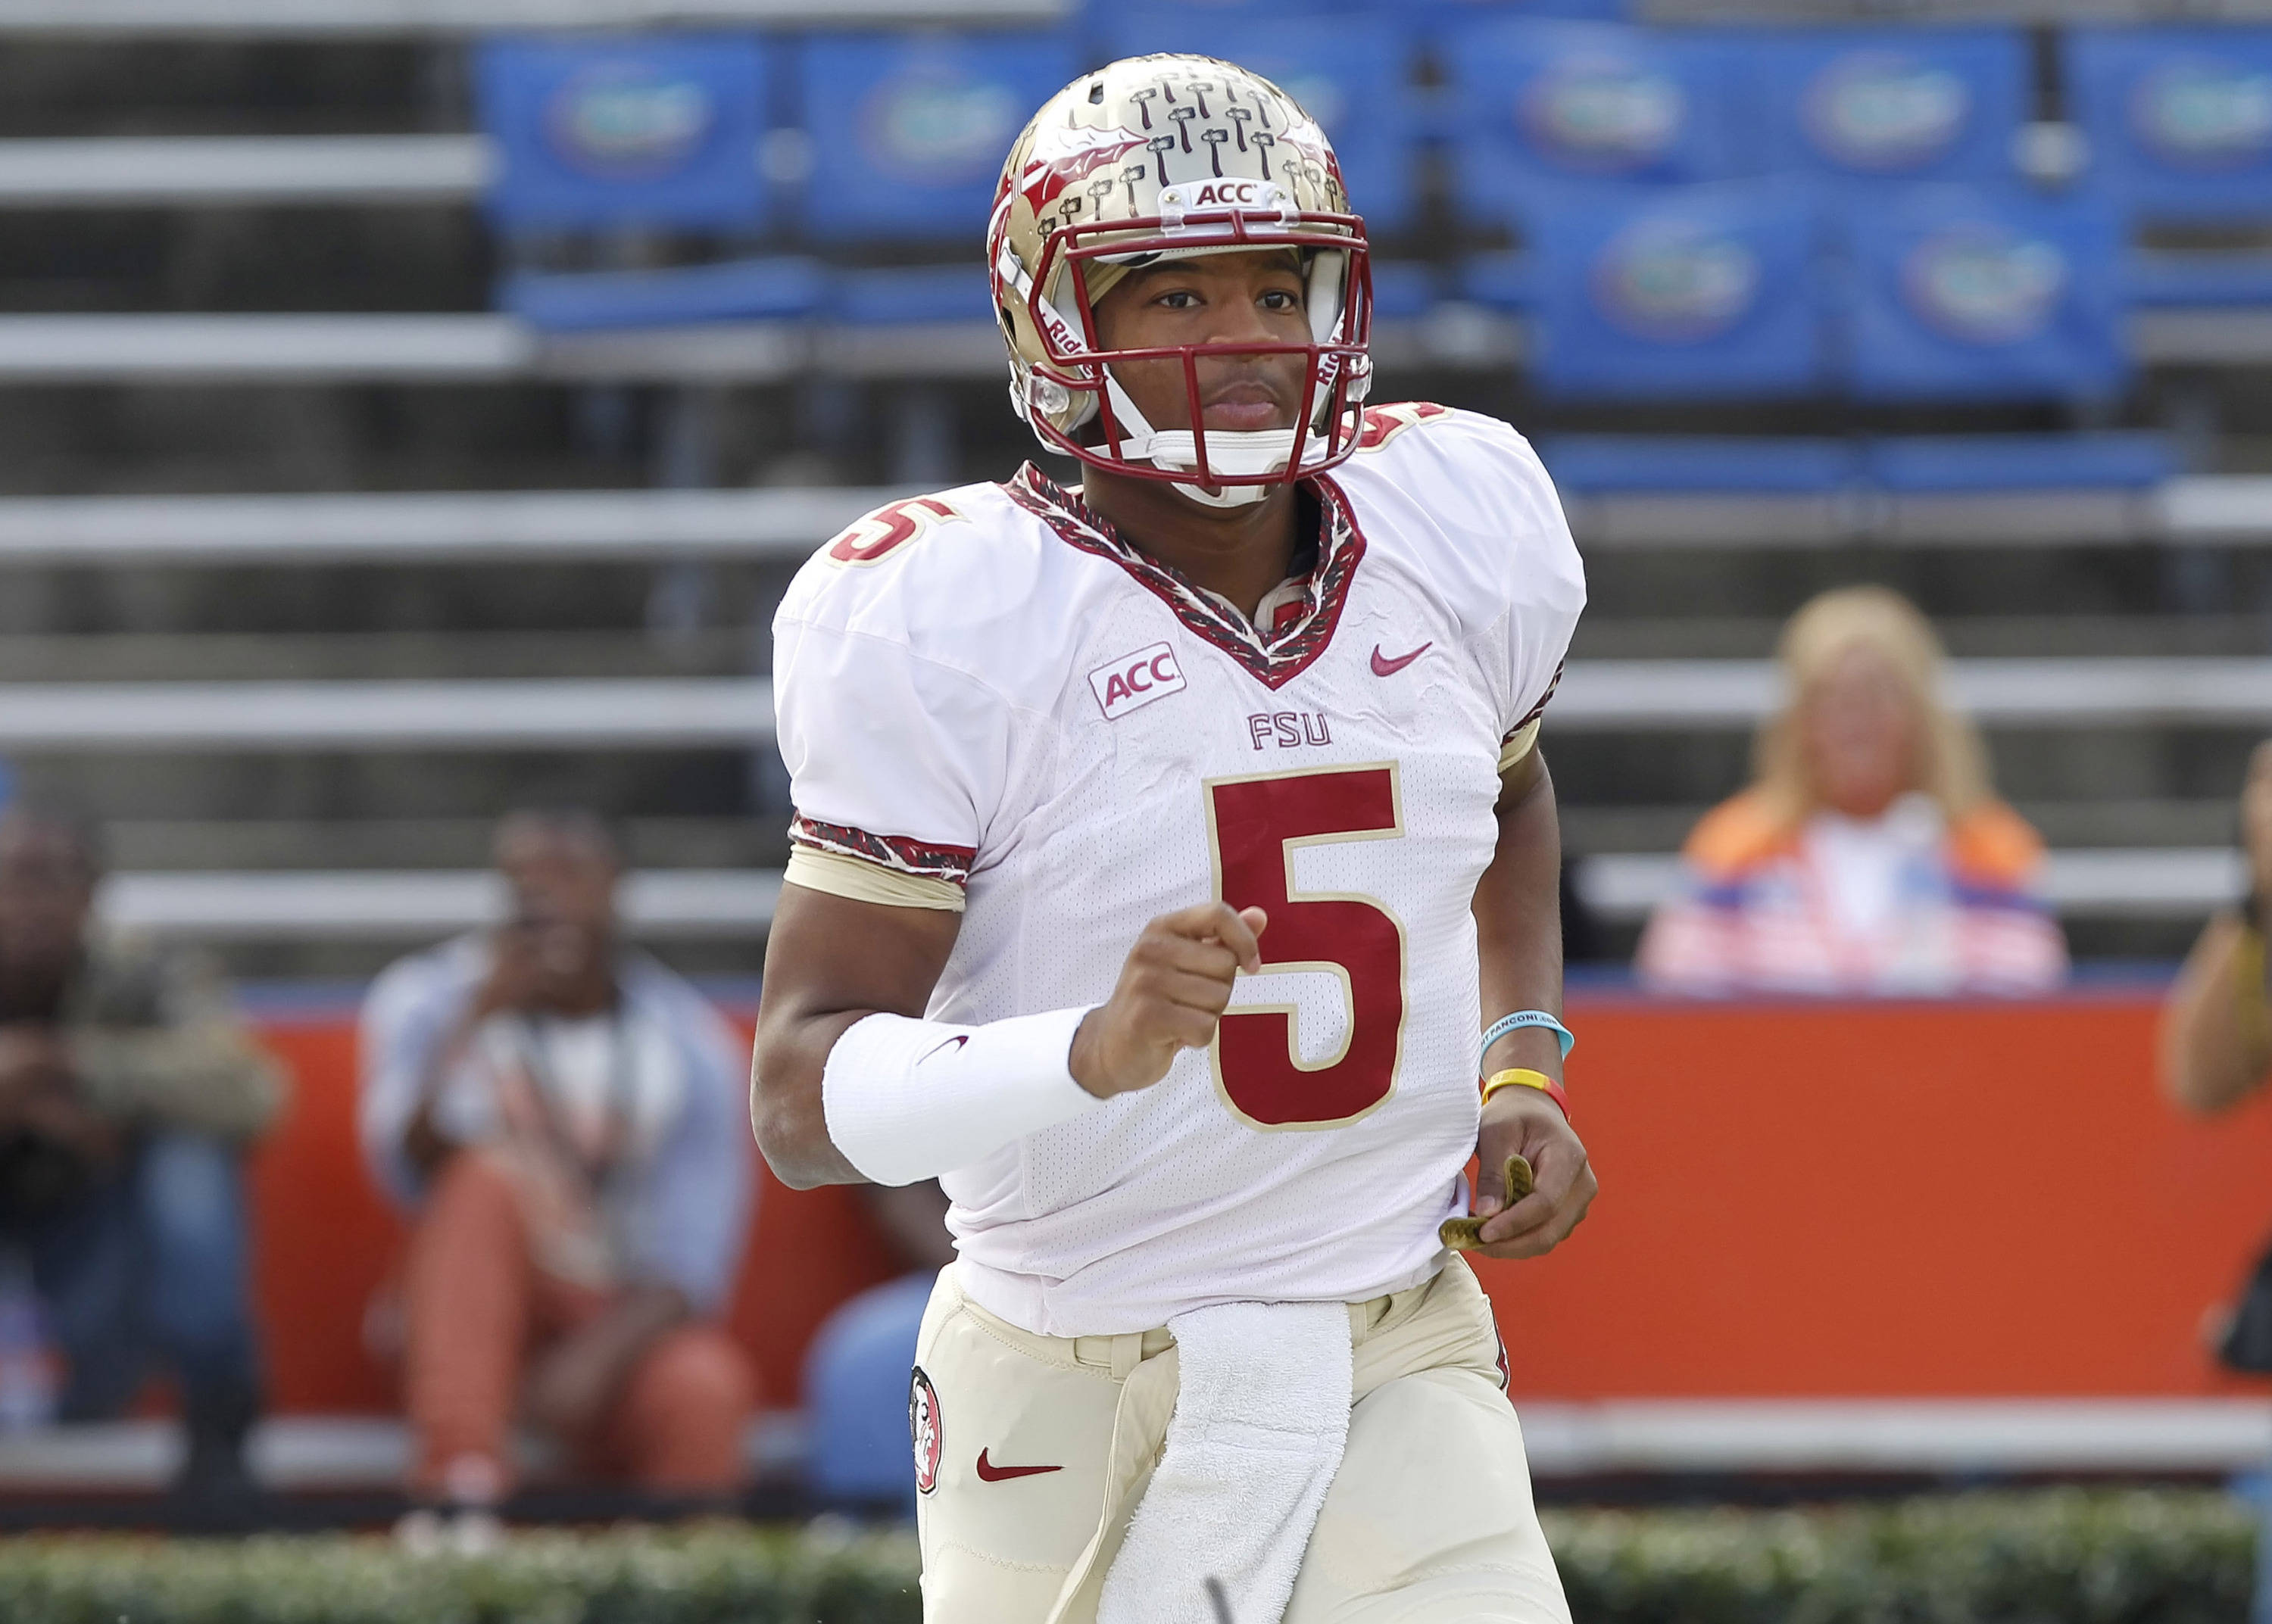 Jameis Winston (5) runs out onto the field. Mandatory Credit: Kim Klement-USA TODAY Sports